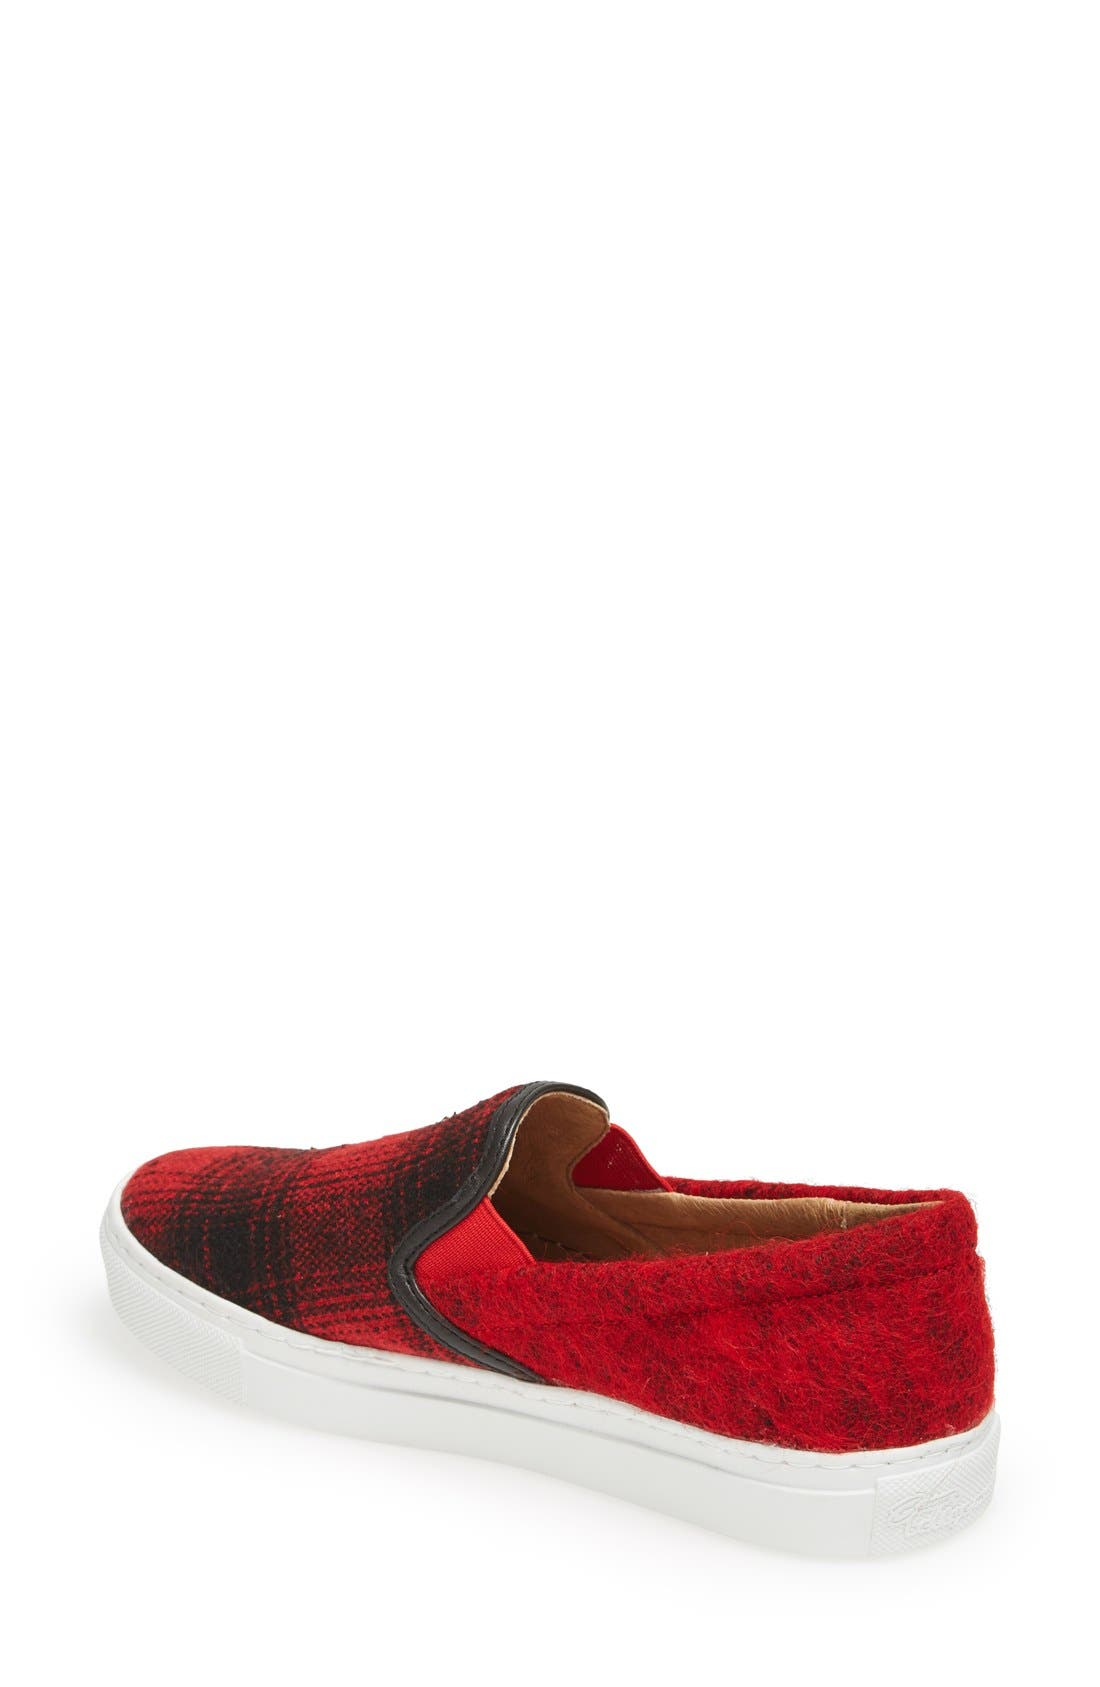 Alternate Image 2  - Bettye by Bettye Muller 'Bentley' Slip-On Sneaker (Women)